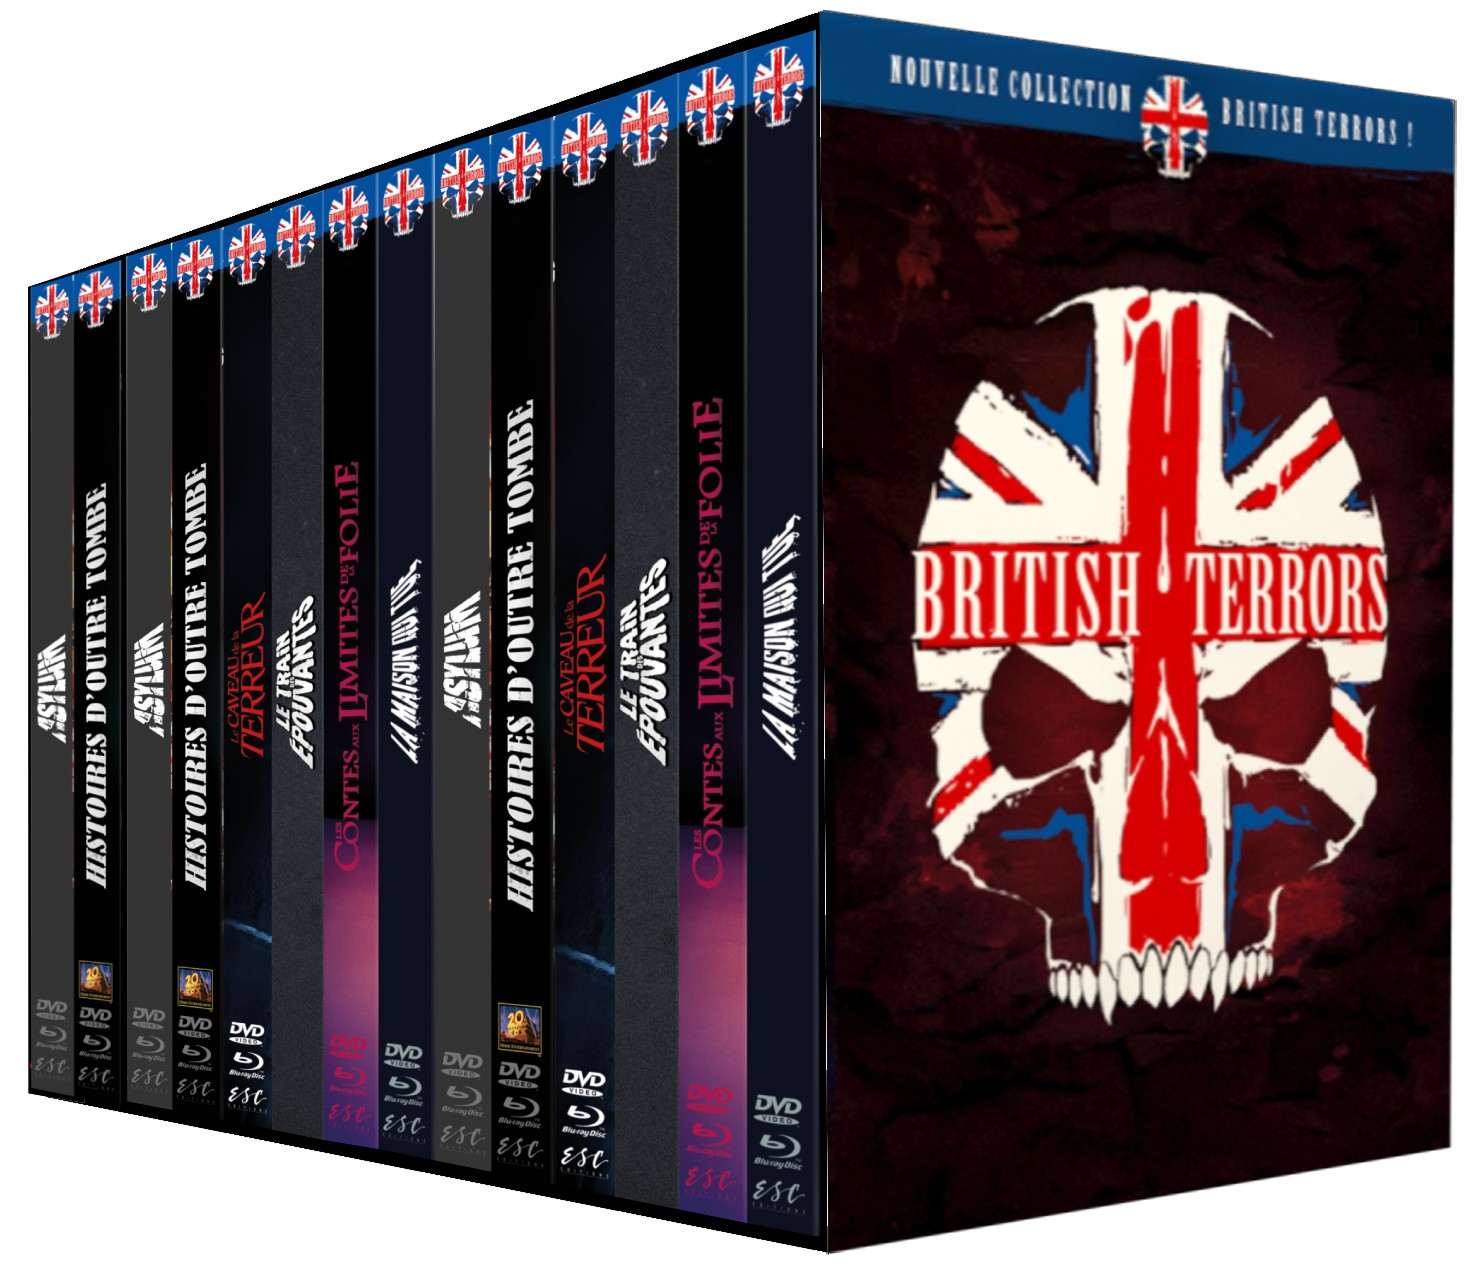 PACK ULTRA COLLECTOR BRITISH TERRORS - 8 MEDIABOOKS HAMMER